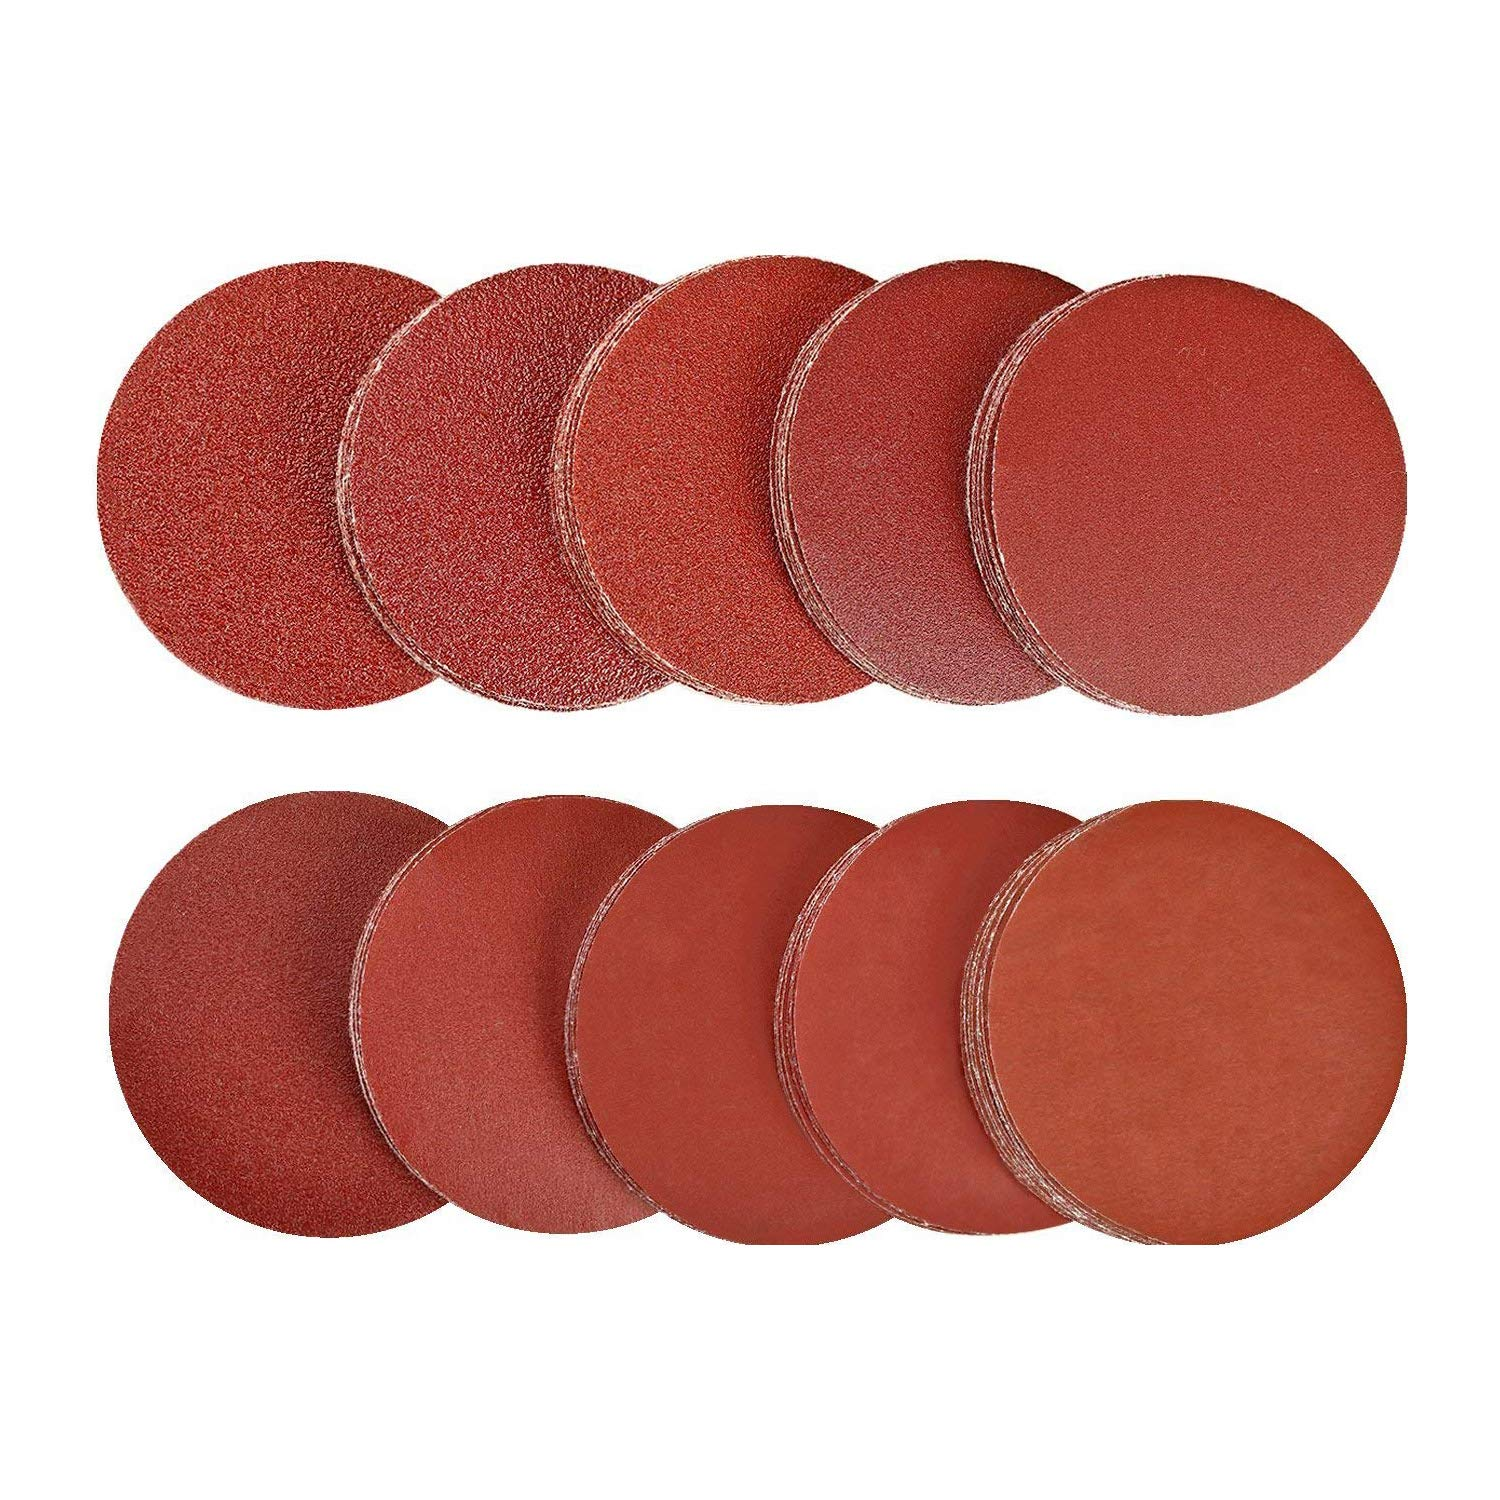 SPTA 100pcs 3 inch Sanding Discs Pad Kit for Drill Grinder Rotary Tools NO-Hole Aluminum Oxide Sanding Discs with Mix grit 40# - 2000# For Car Polisher, Air Sander,Rotary Polisher